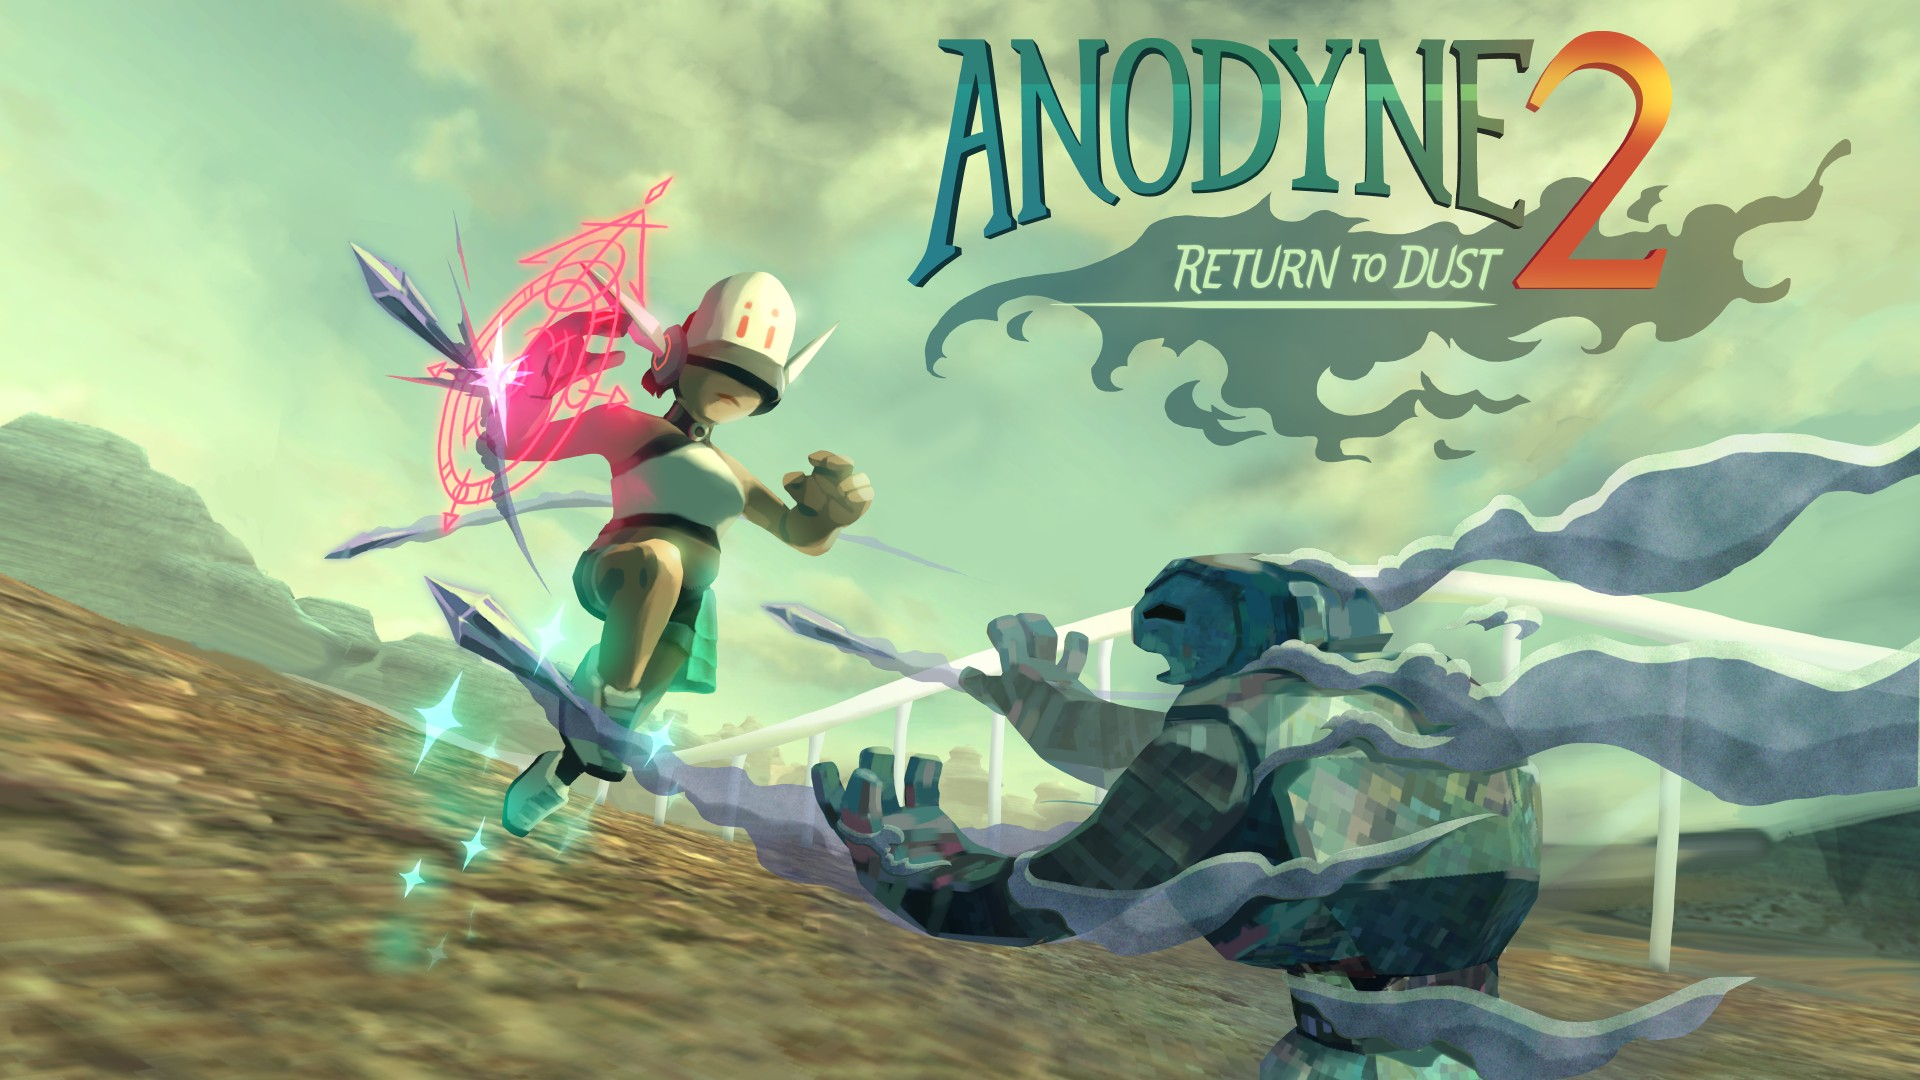 Video For Anodyne 2: Return to Dust Available Now